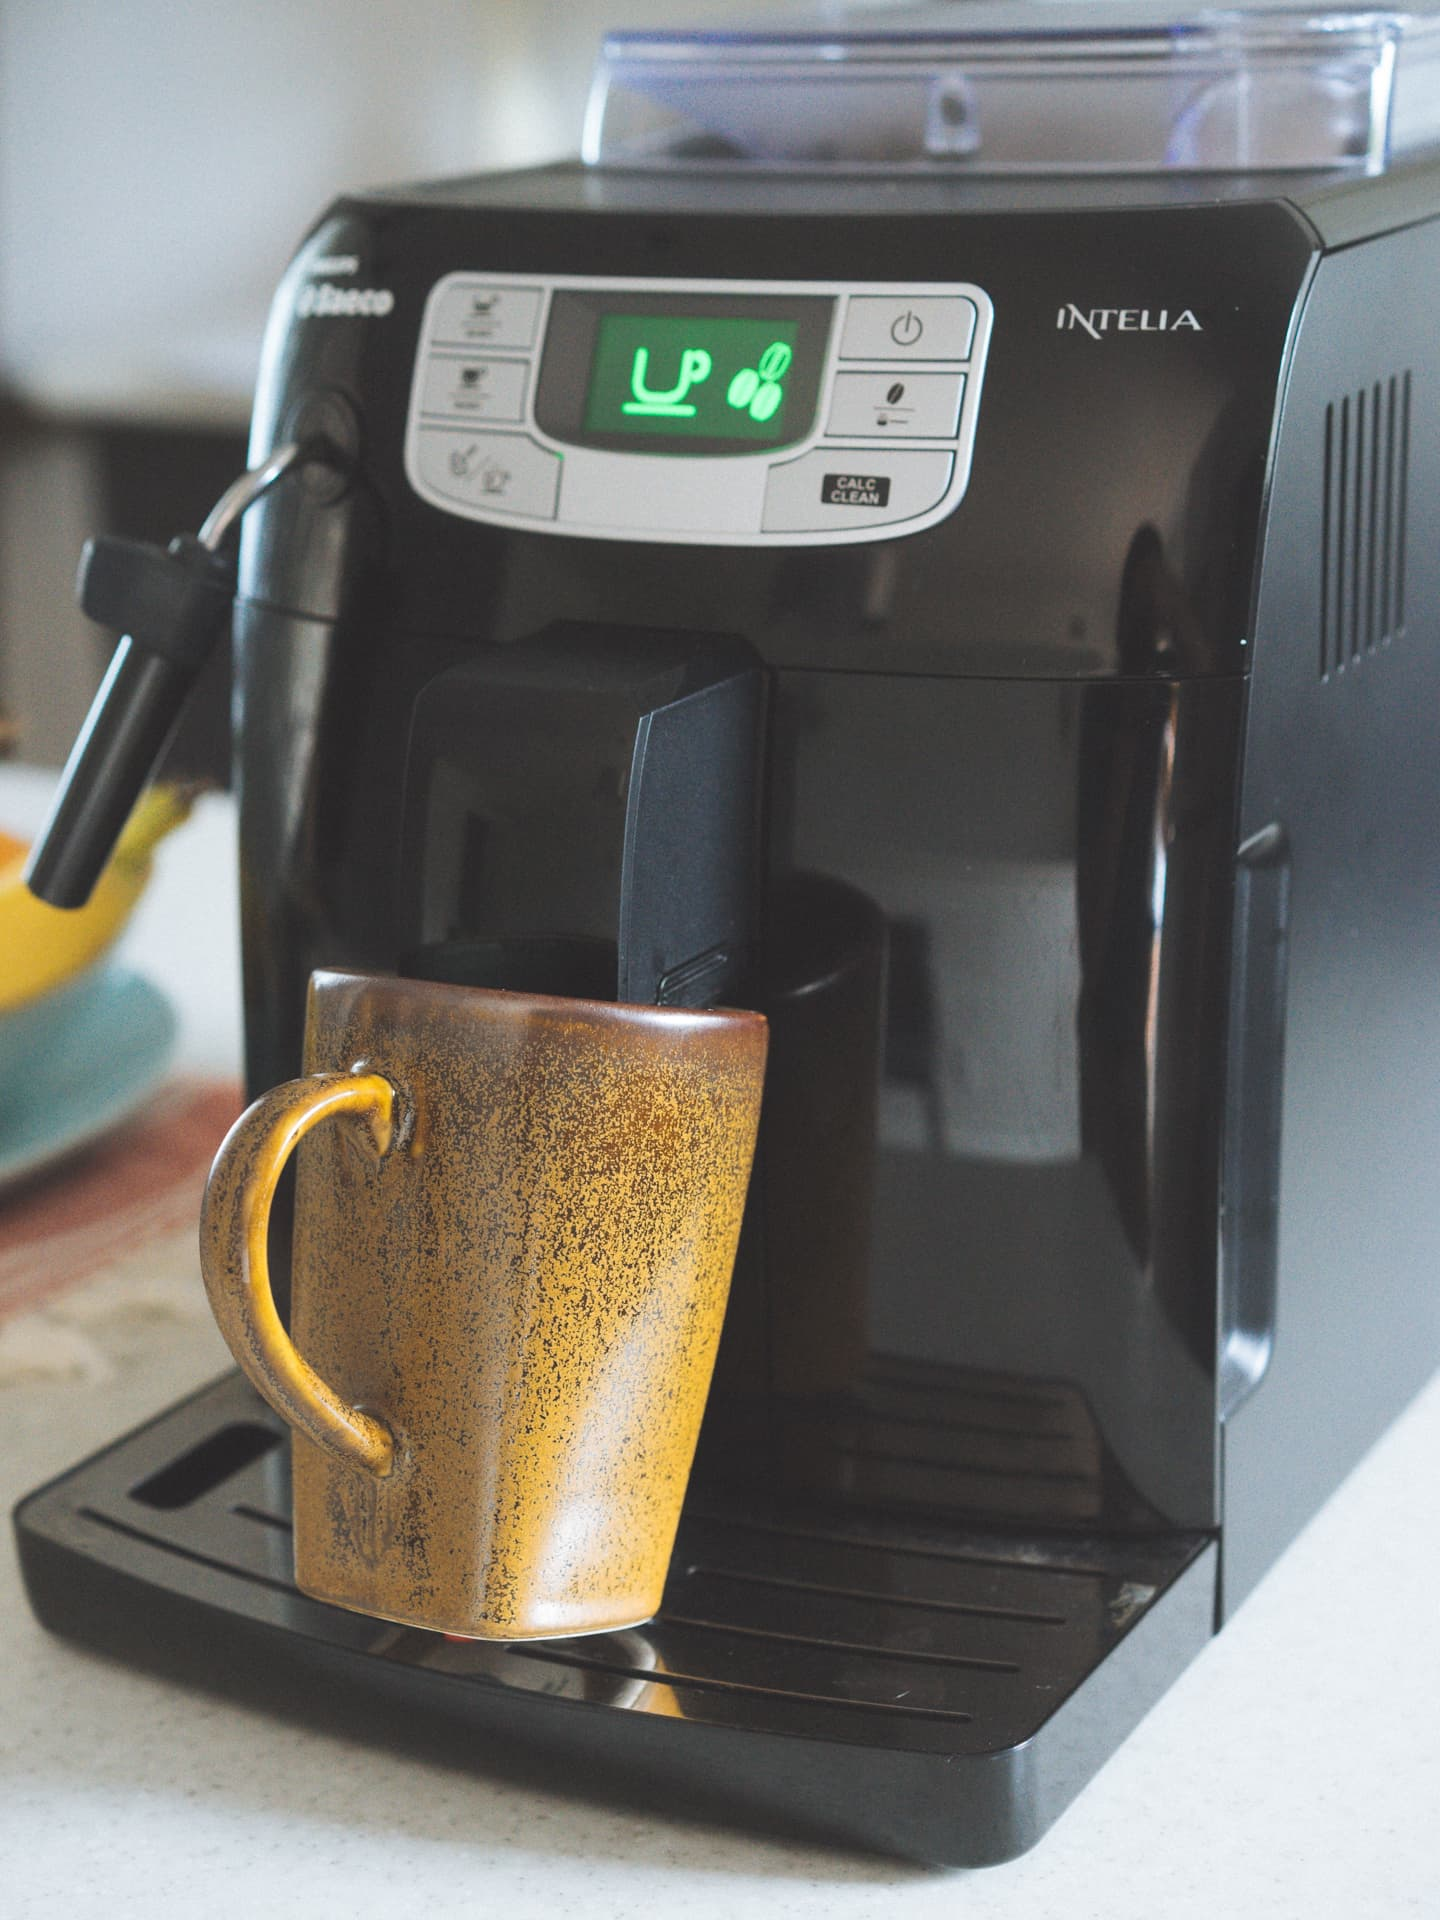 Philip Saeco A Review Of The Philips Saeco Intelia Hd8751 47 Coffee Machine